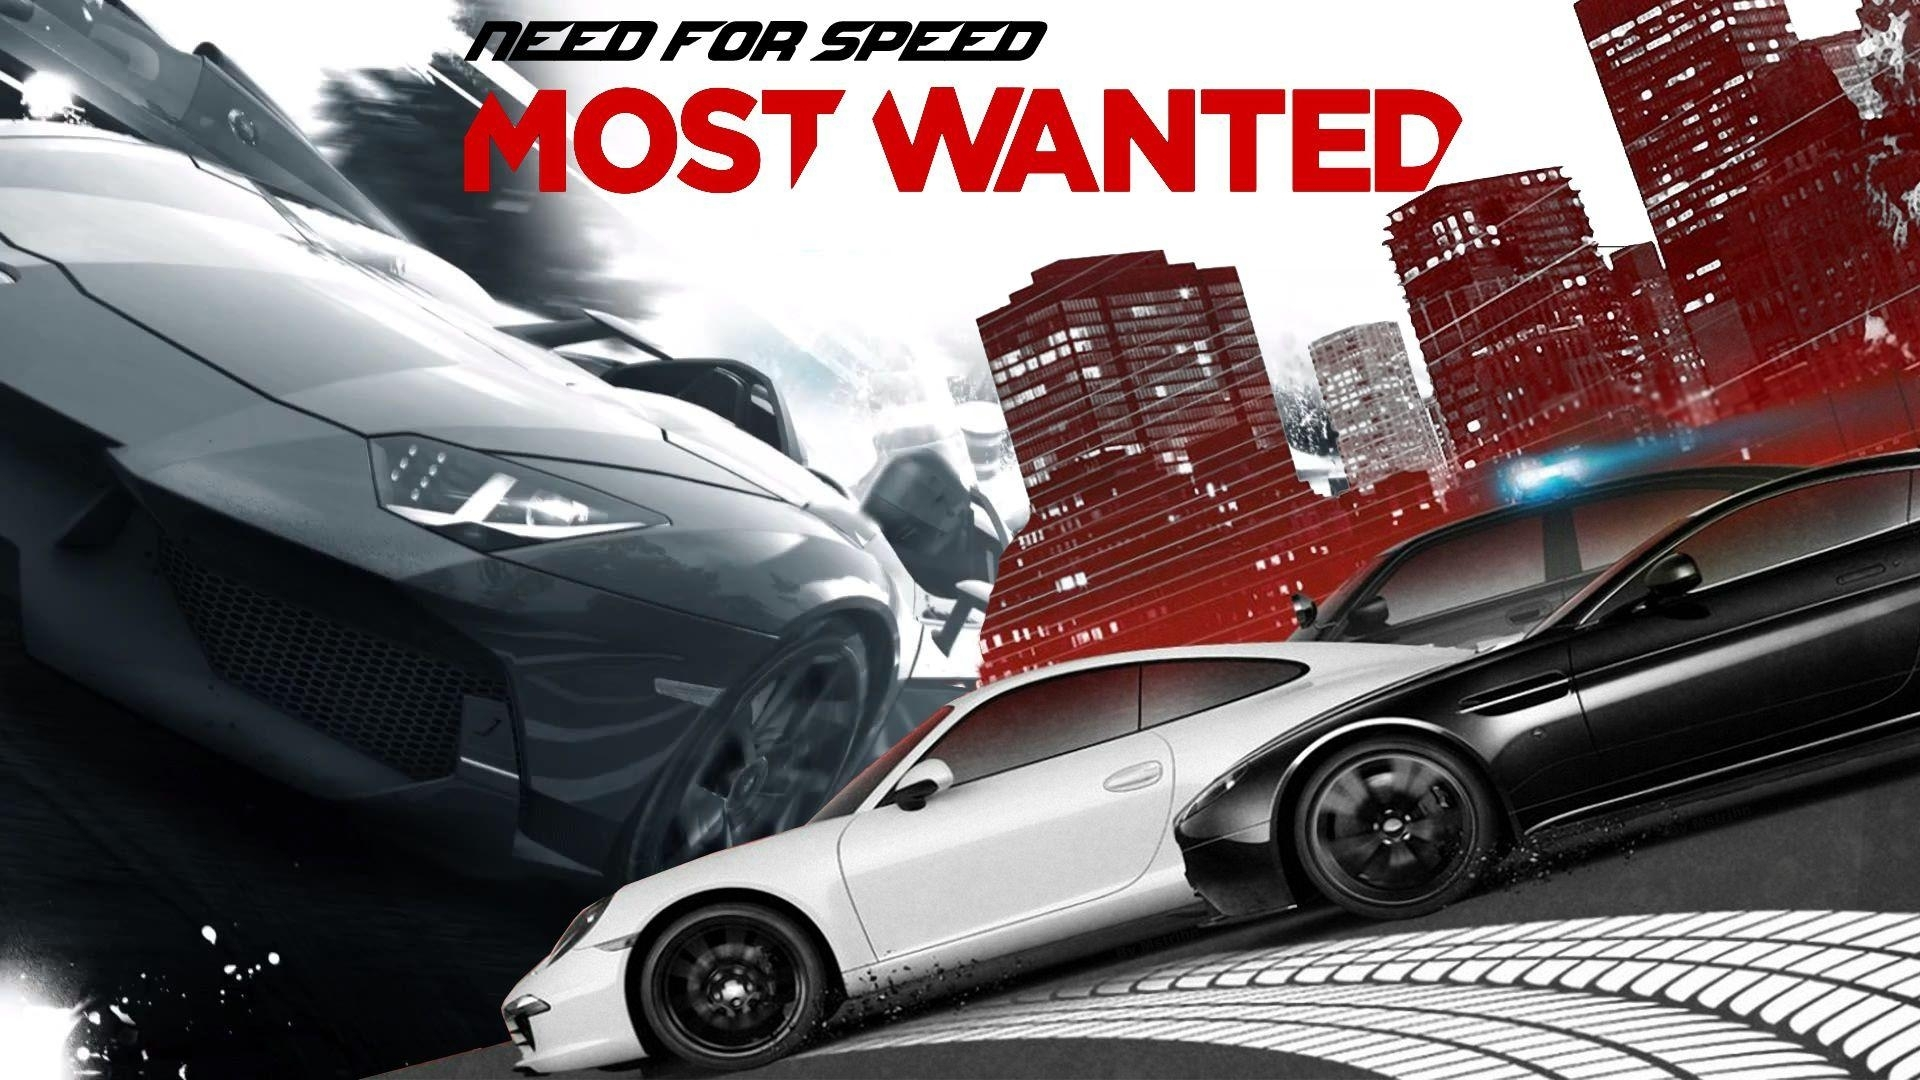 need for speed most wanted wallpapers - wallpaper cave